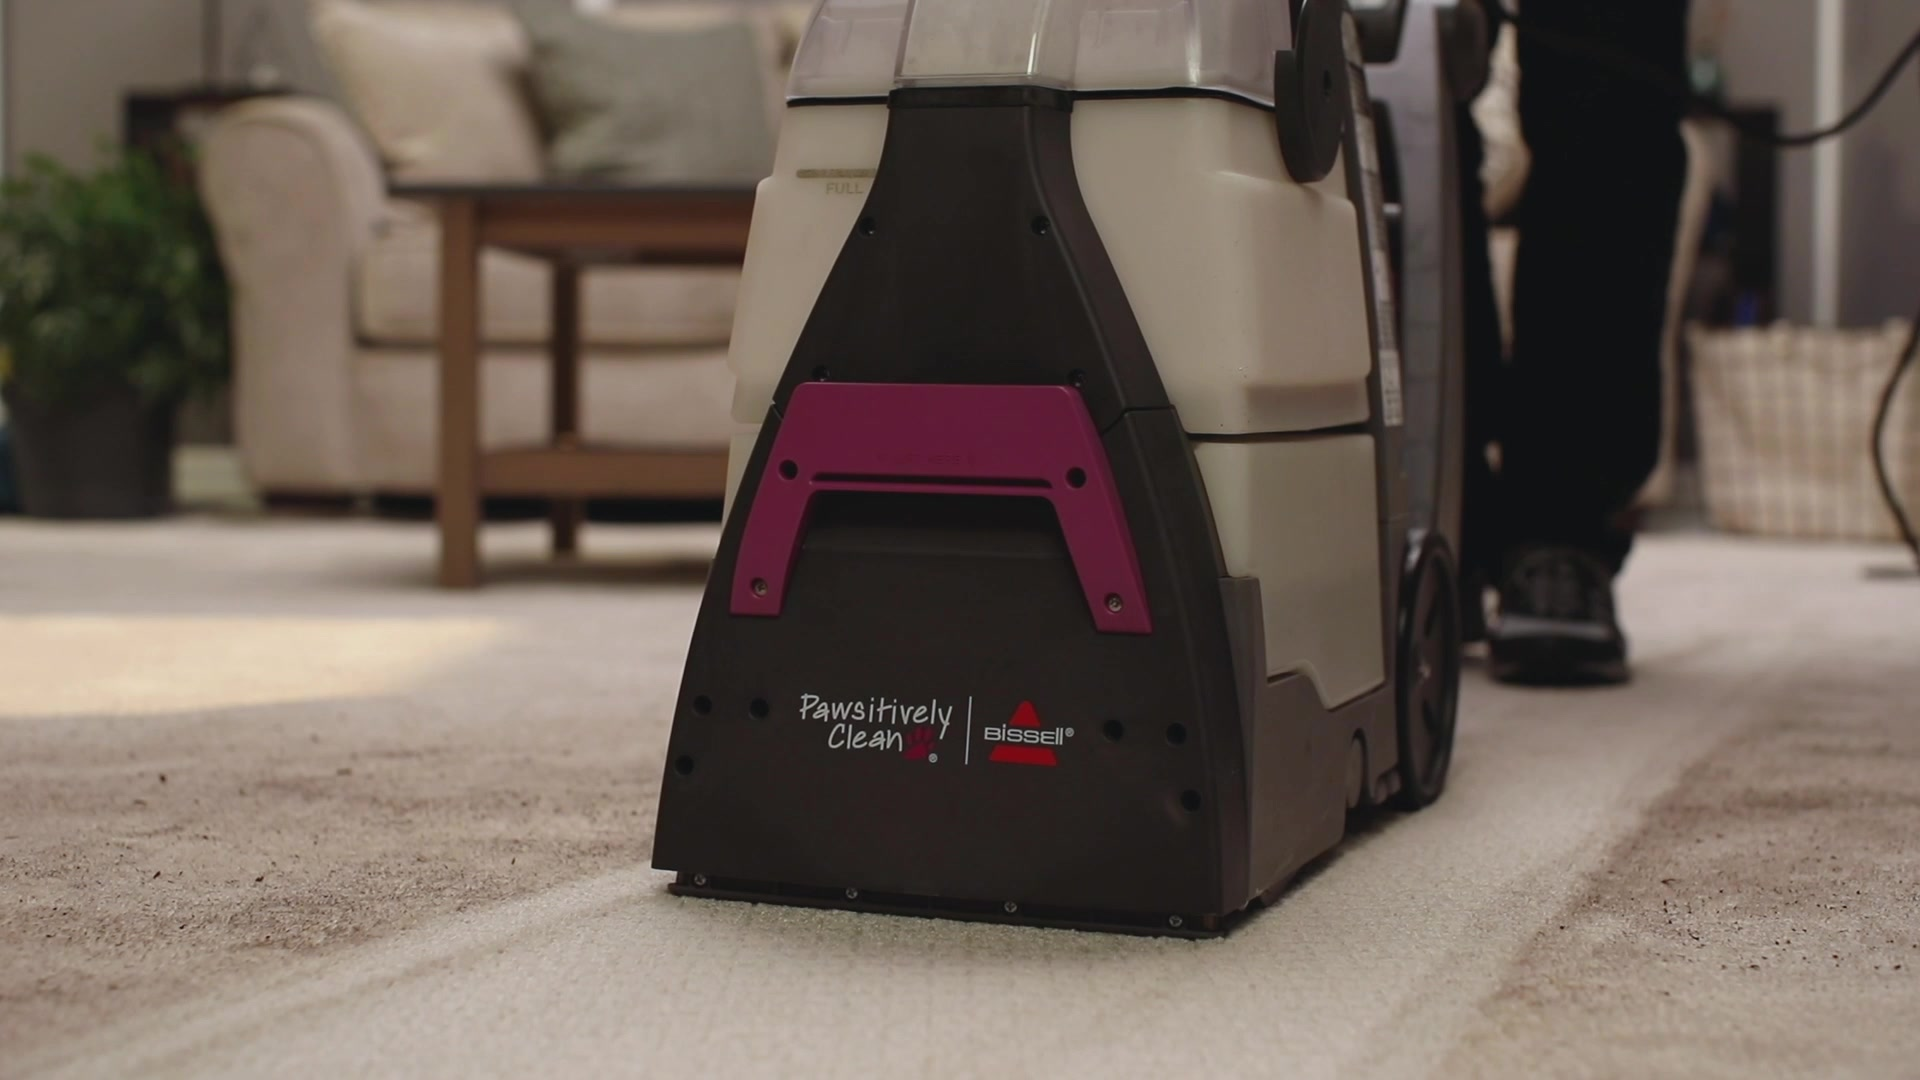 BISSELL Pawsitively Clean Carpet Cleaning Machine